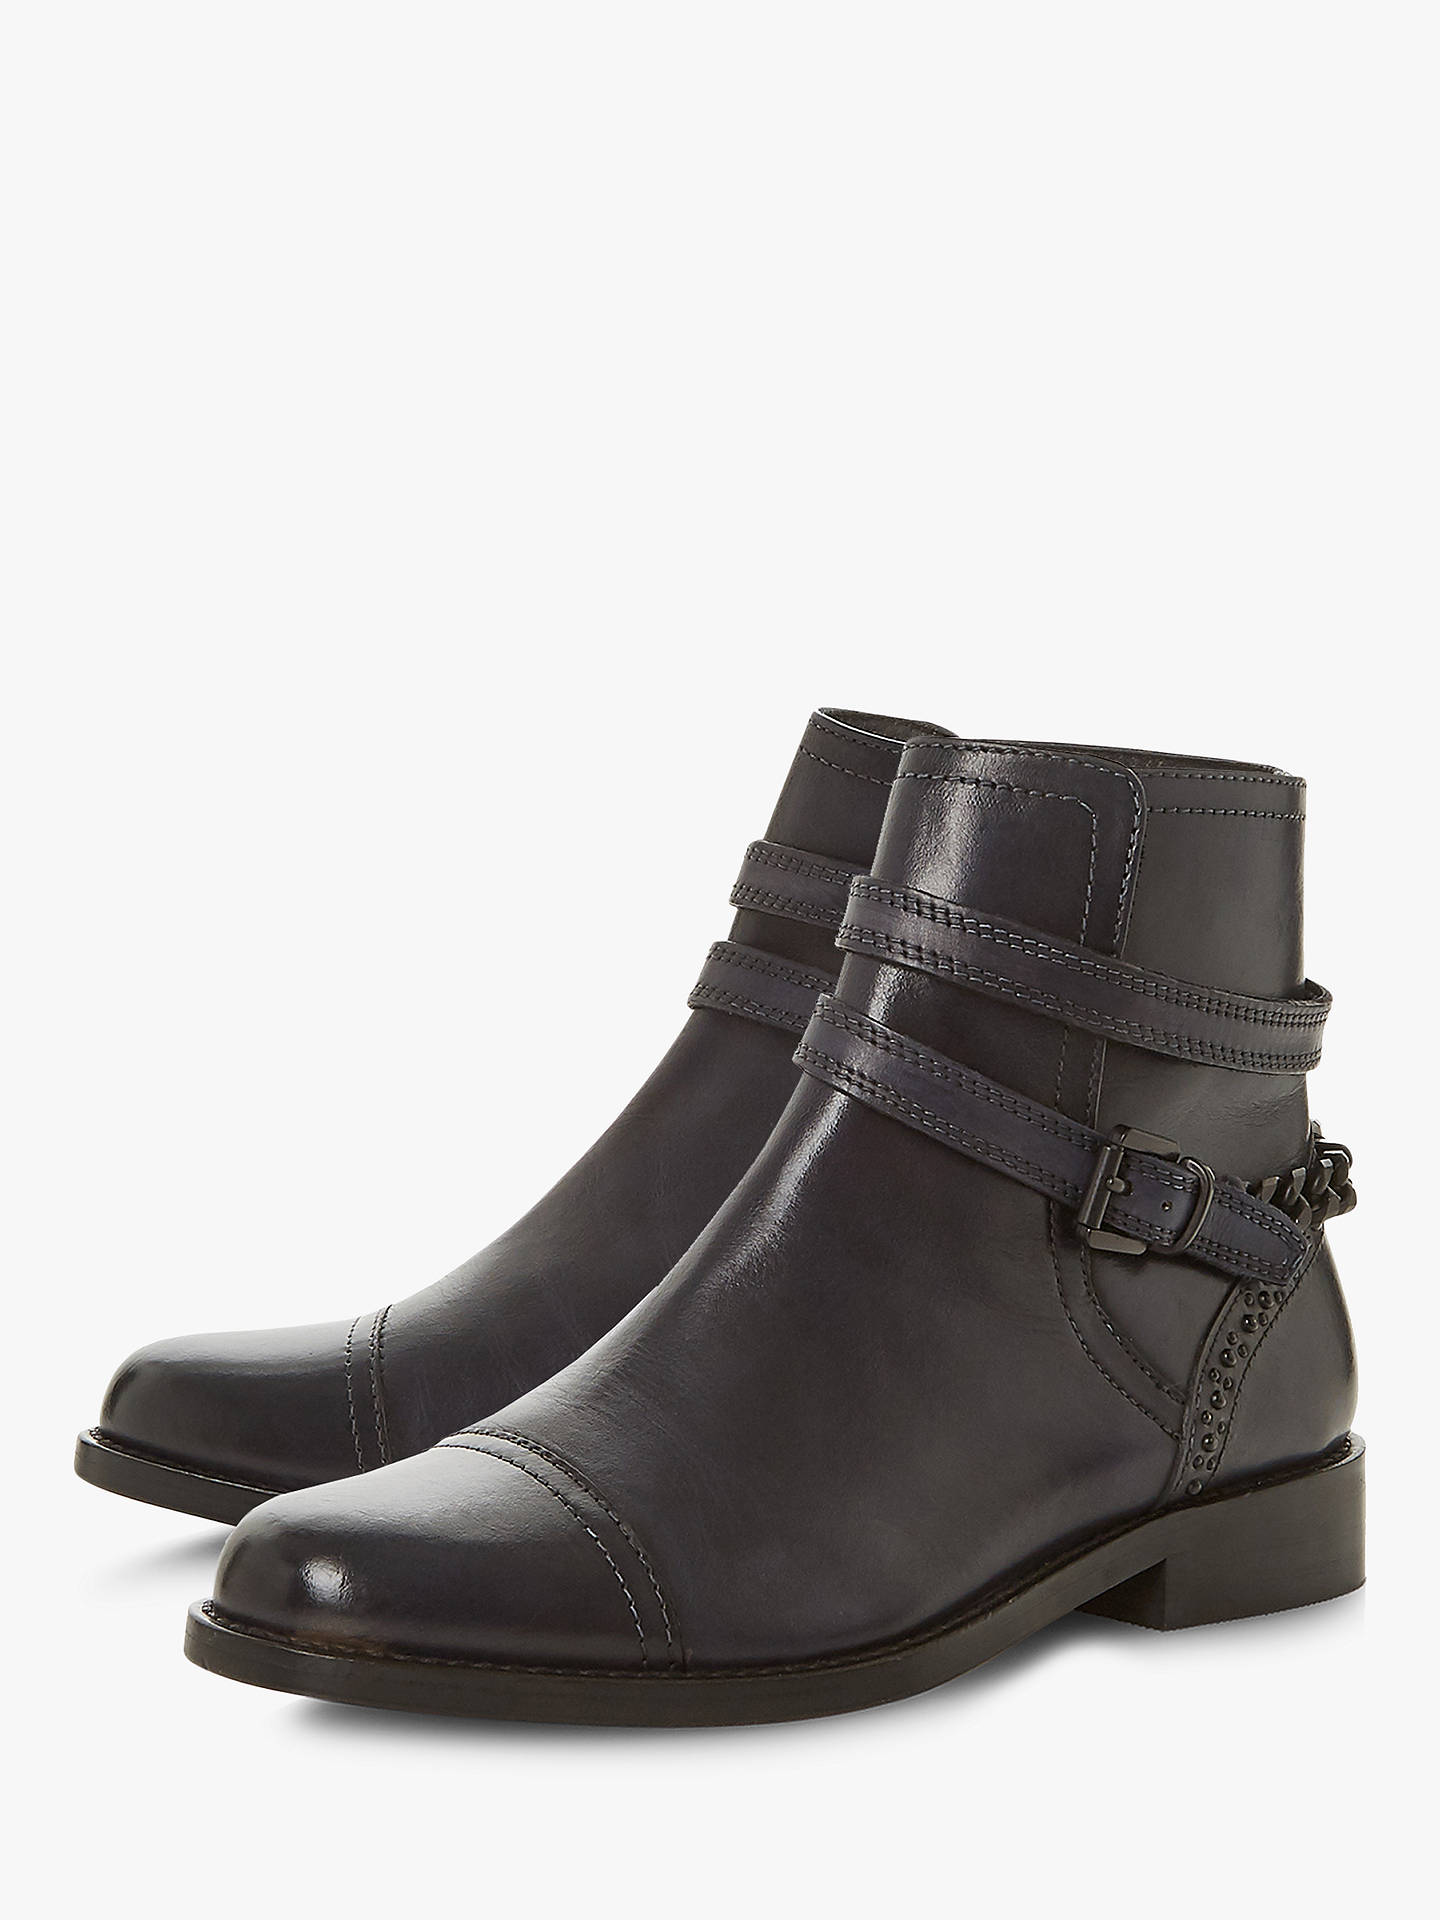 Buy Bertie Proseper Buckle Ankle Boots, Navy Leather, 7 Online at johnlewis.com